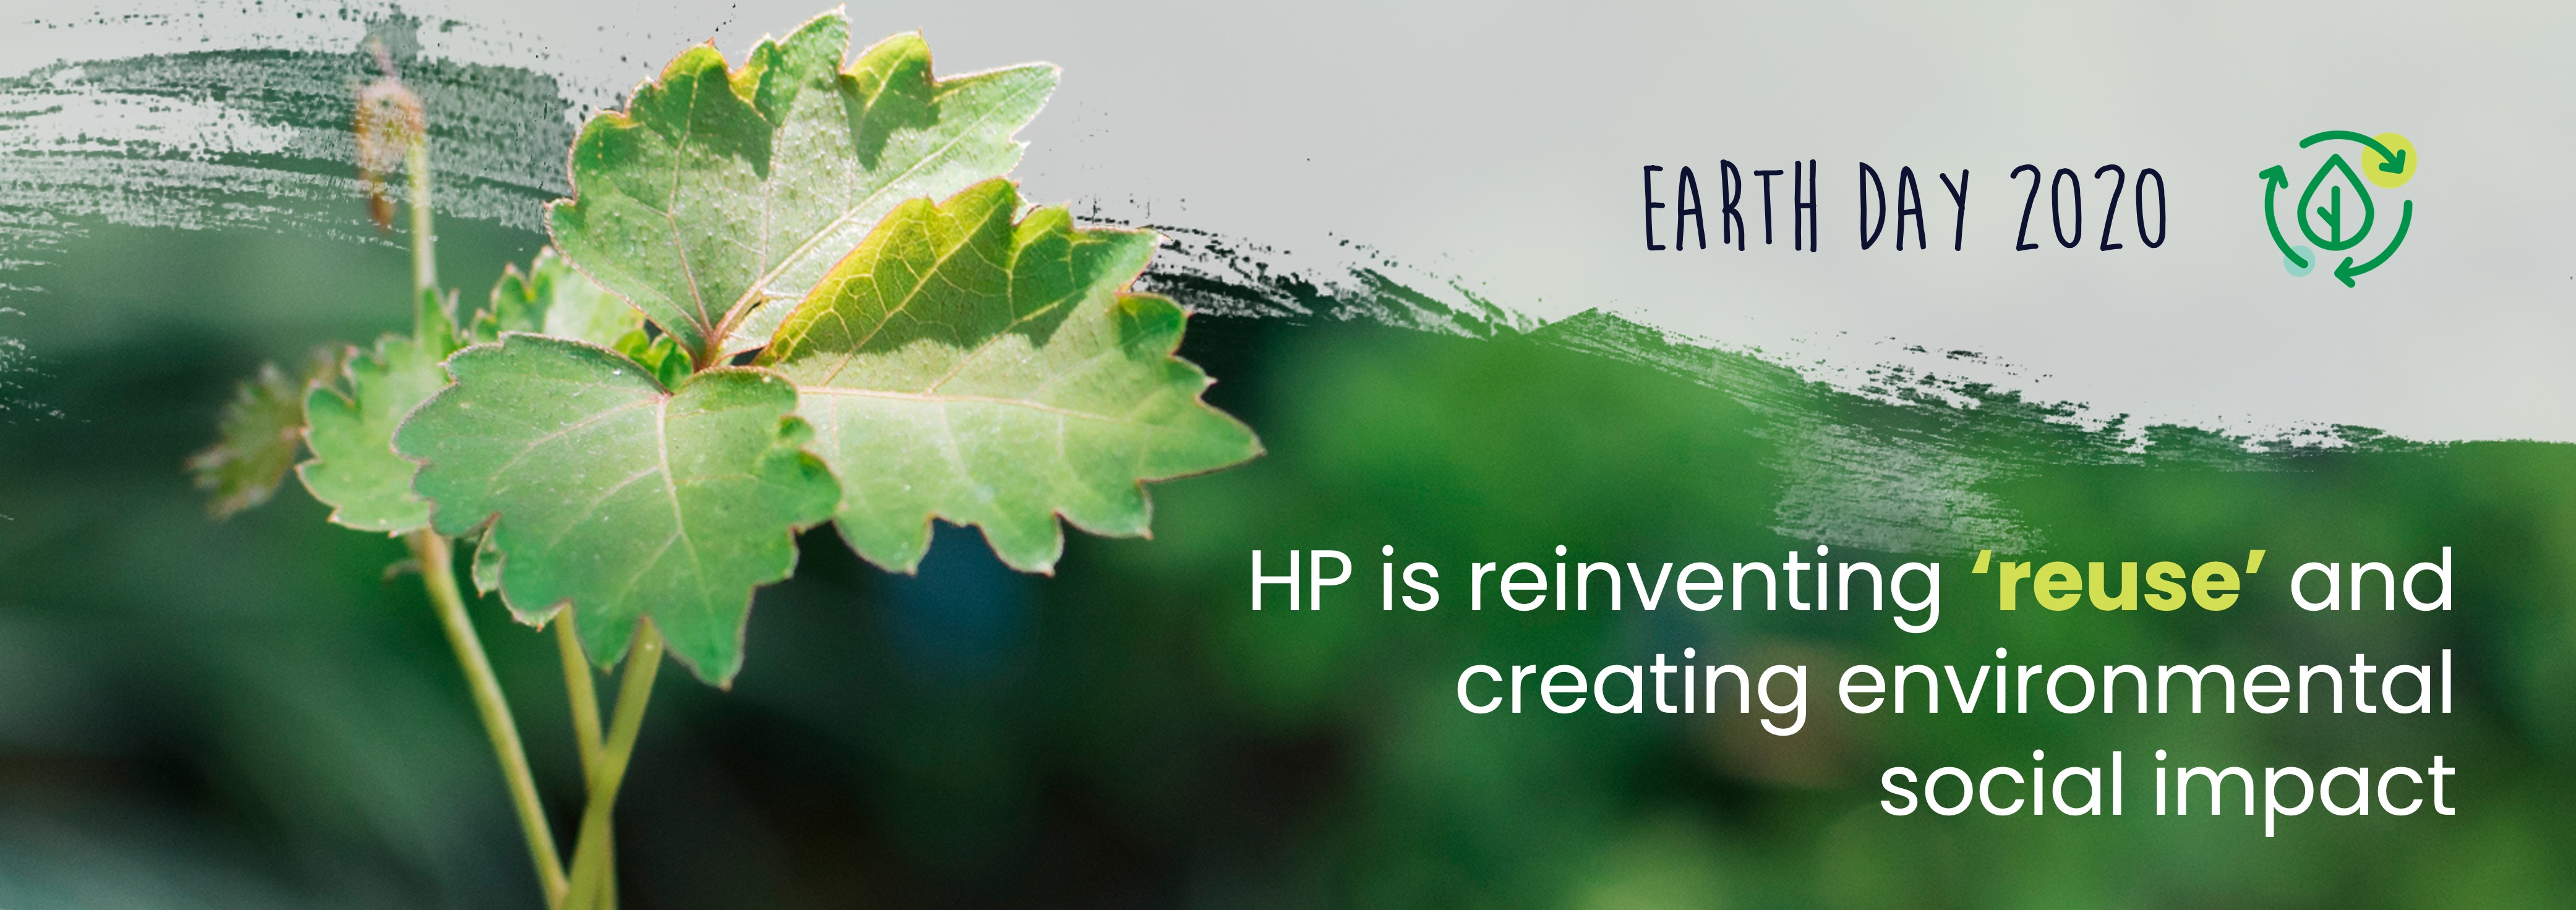 HP Technology on Environmental Sustainability